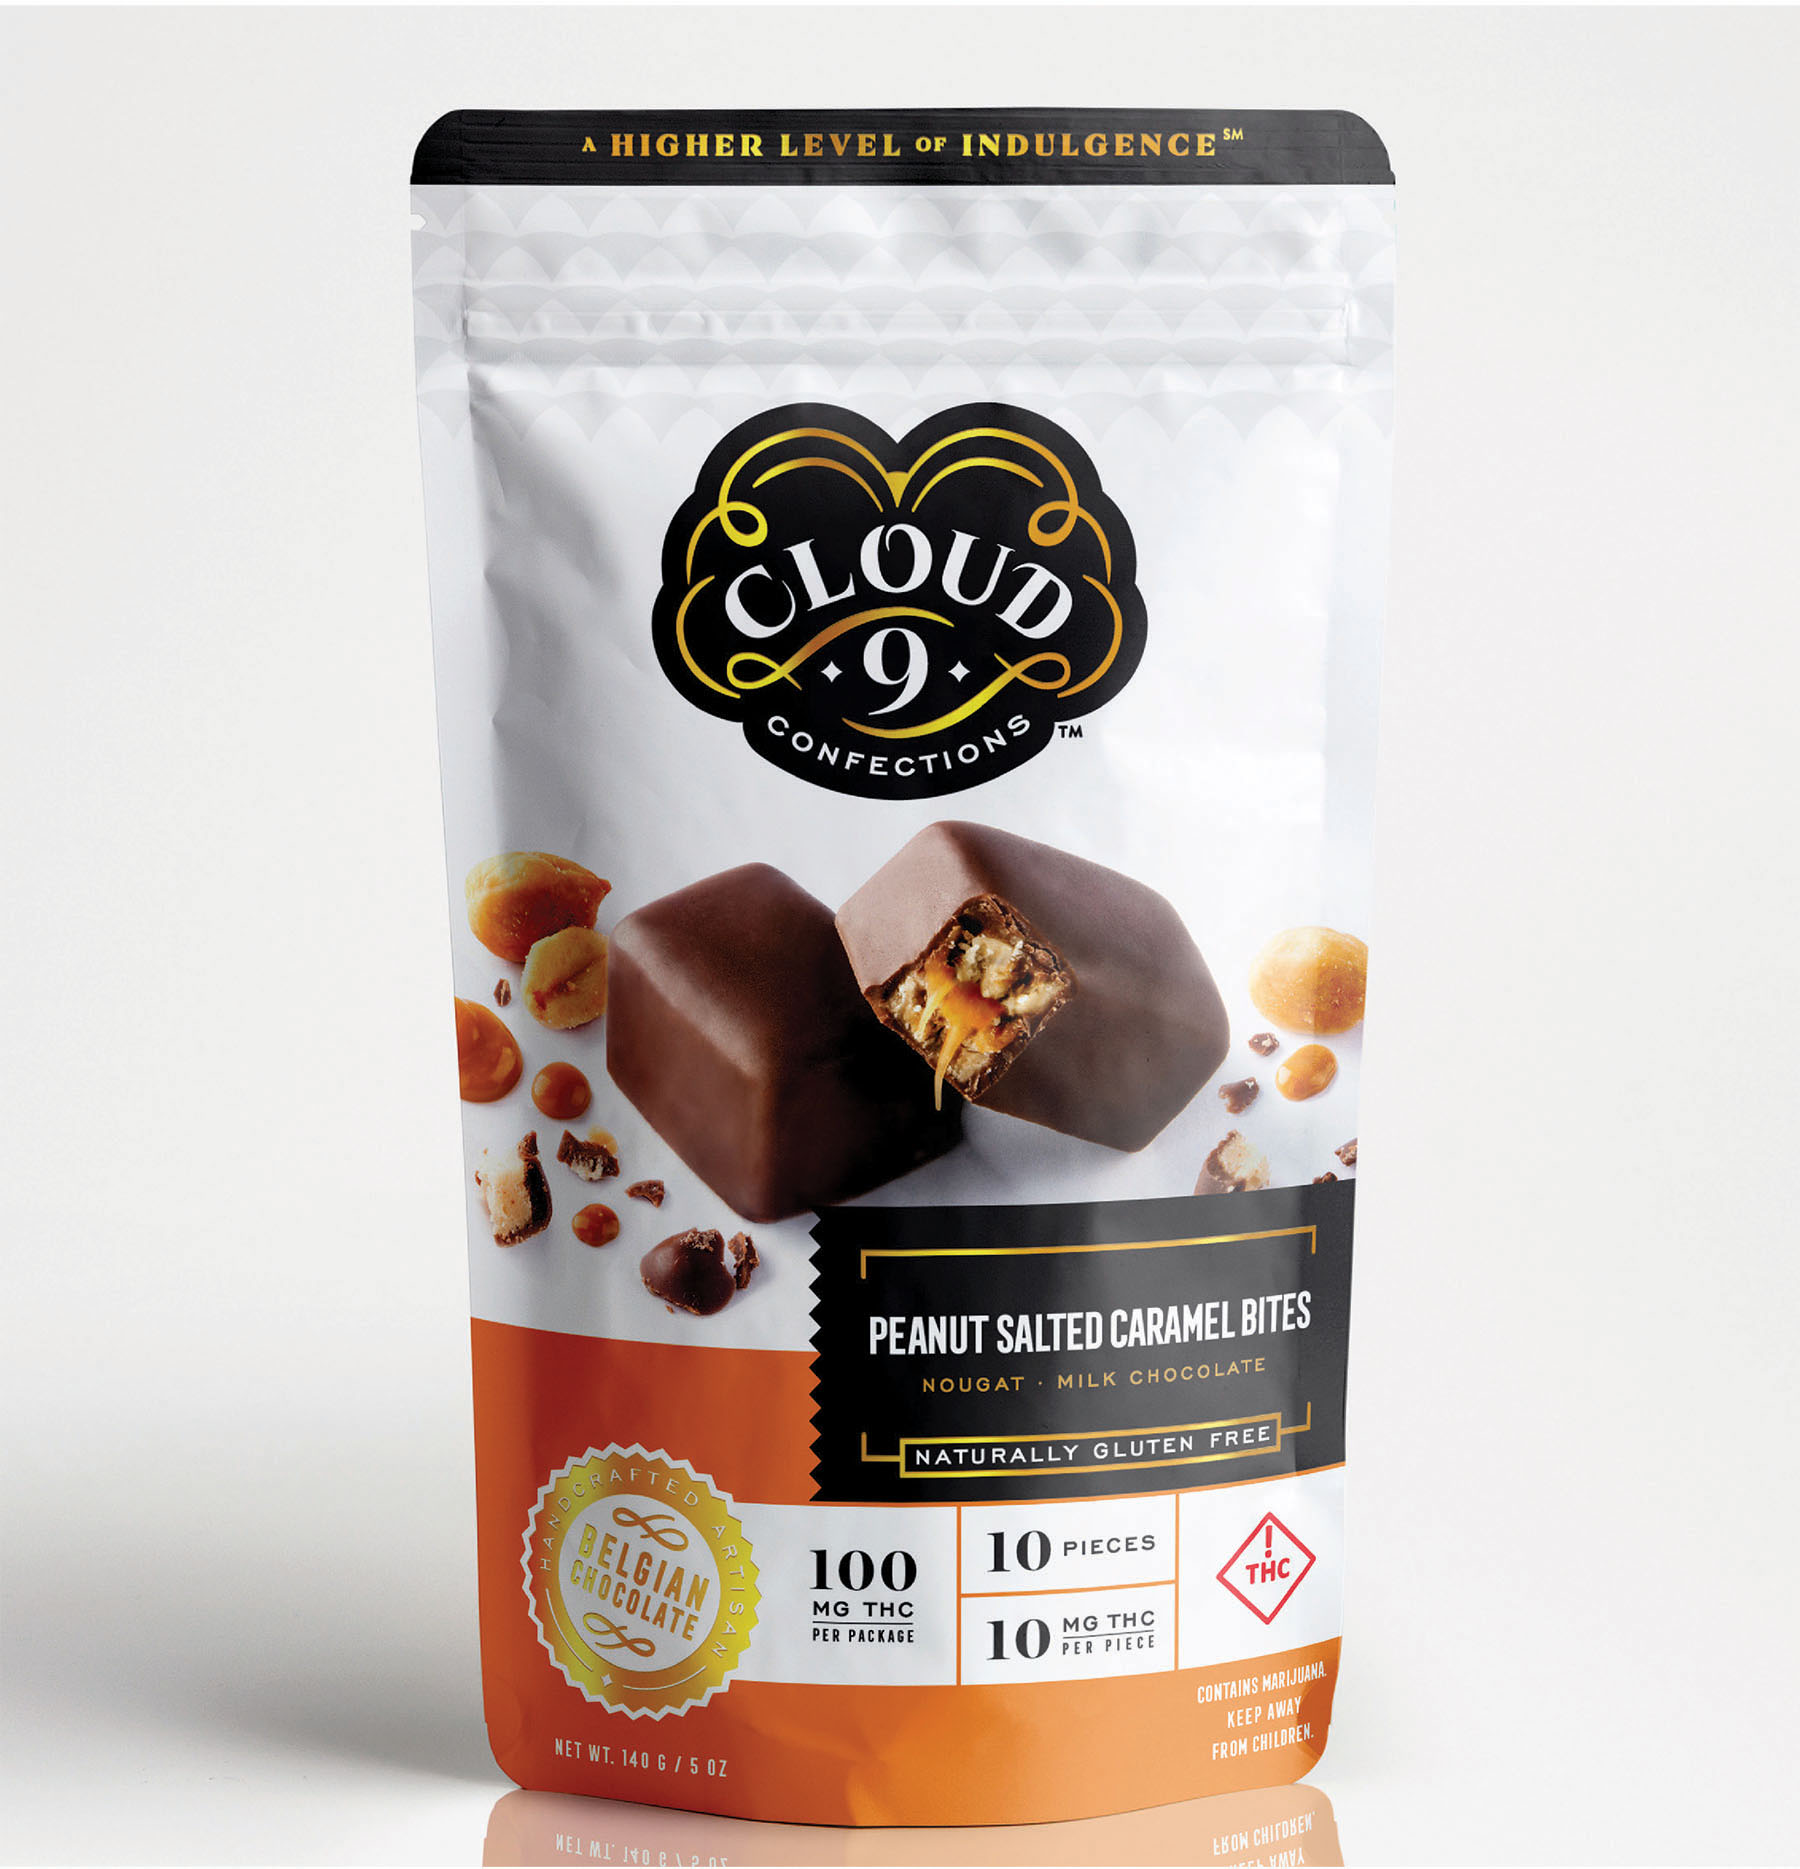 PEANUT SALTED CARAMEL BITES   Crunchy peanuts layered with creamy nougat and salted caramel, all encapsulated inside a decadent Belgian milk chocolate shell.  10 mg THC / Piece // 100 mg THC / Package